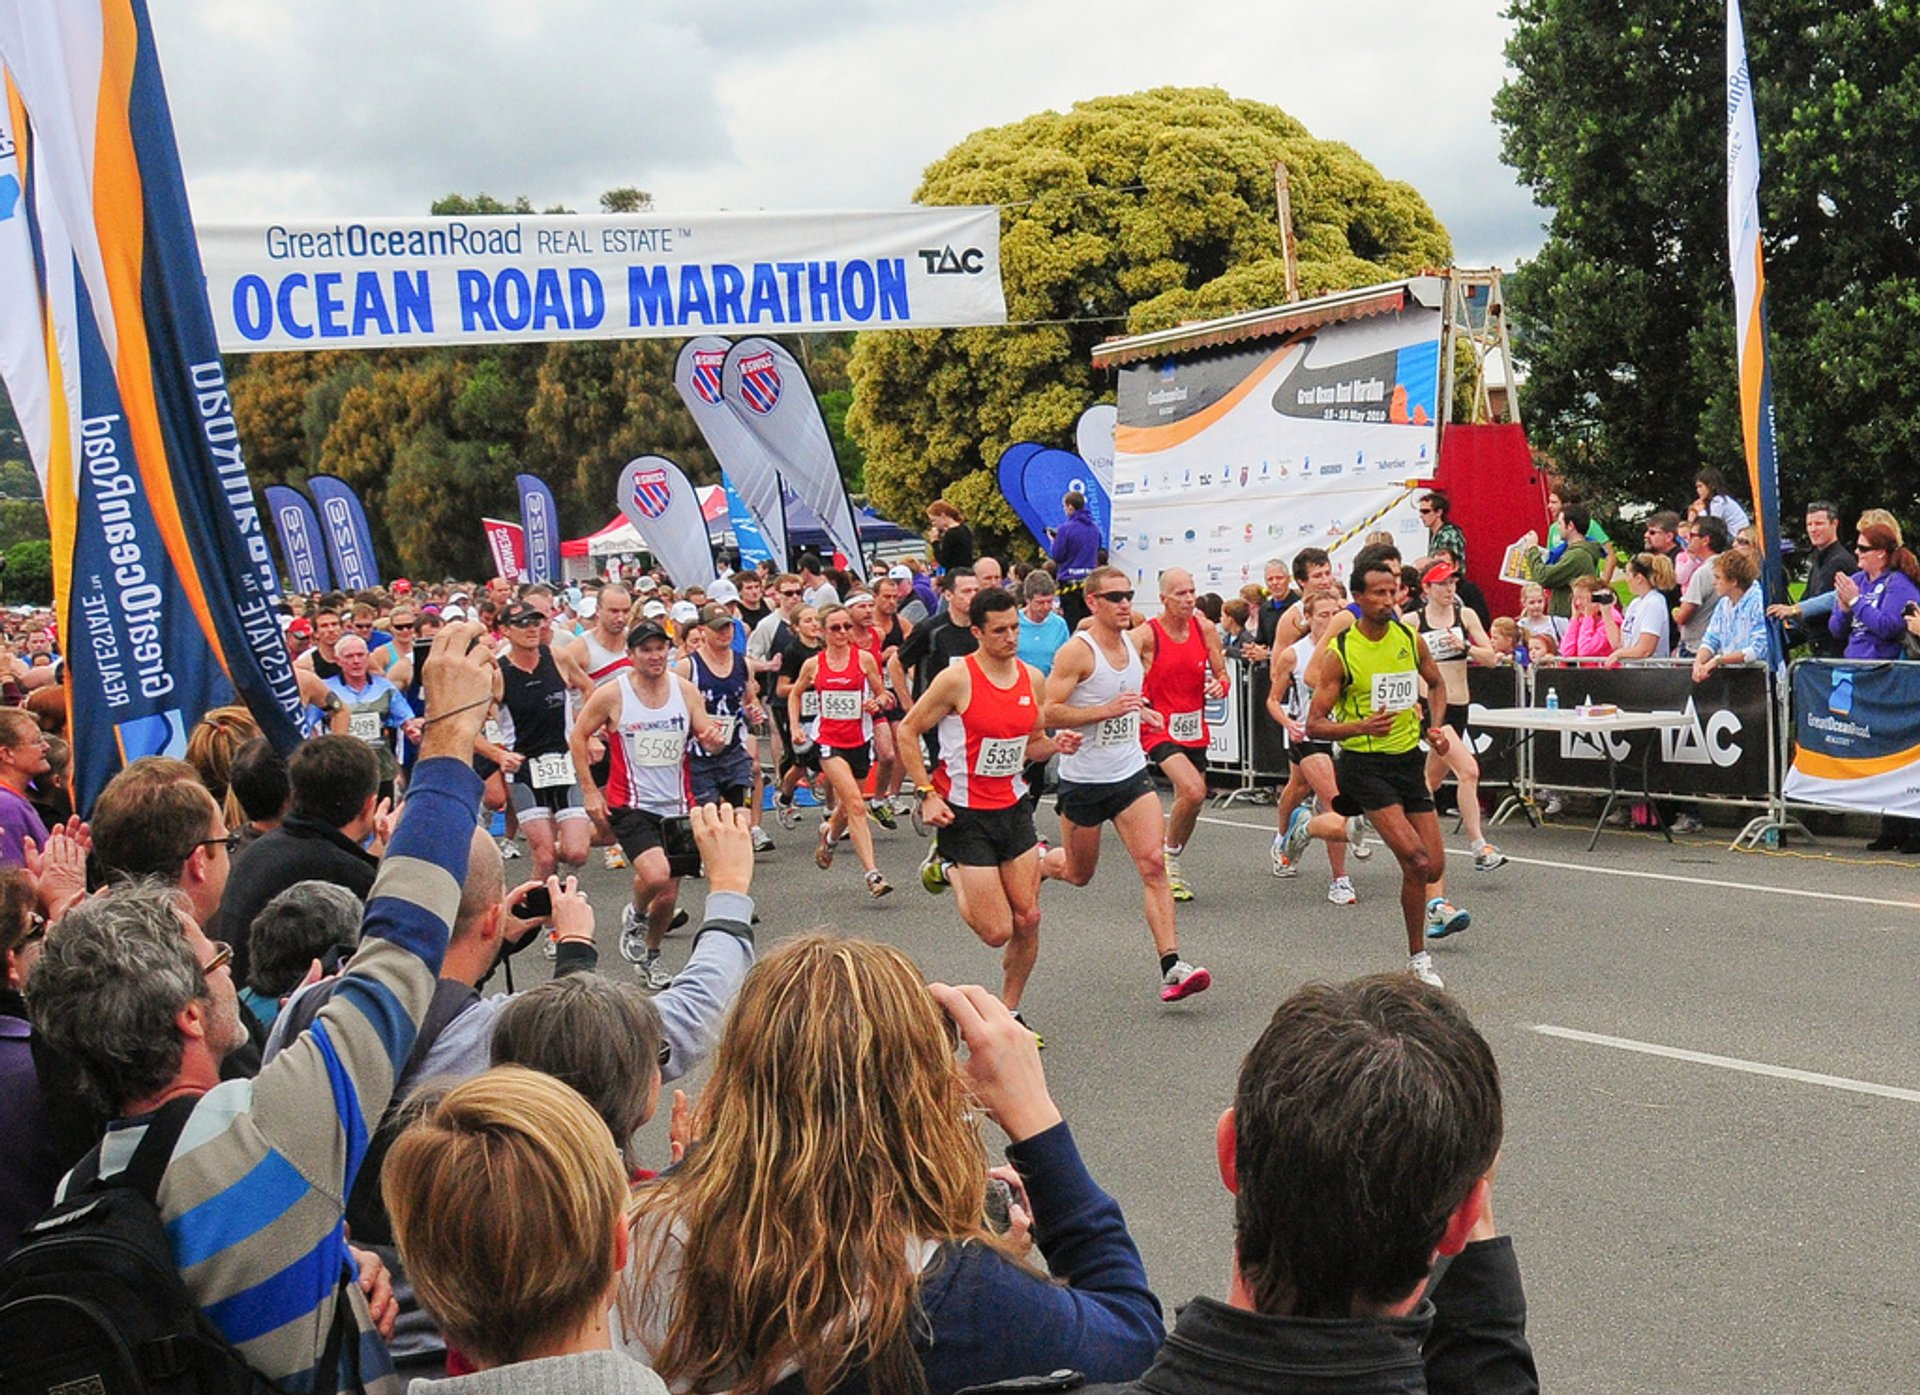 Great Ocean Road Running Festival in Victoria 2020 - Best Time